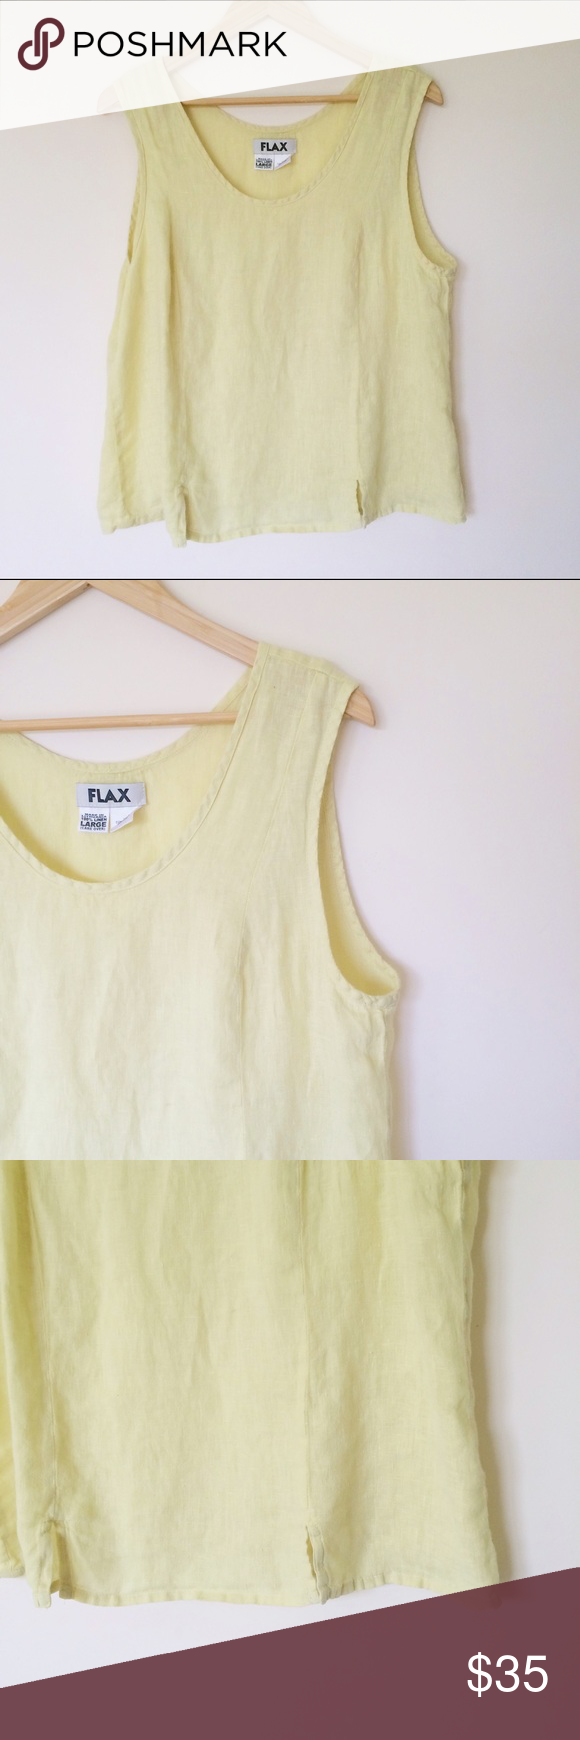 "Price dropped!!! FLAX linen tank top Vintage linen tank top in light yellow color. Excellent condition. Suing on the label: I am considerate of others. Size L. Flat measurements: underarms:24"", length:23"". From pet free and smoke free home. Flax  Tops Tank Tops"